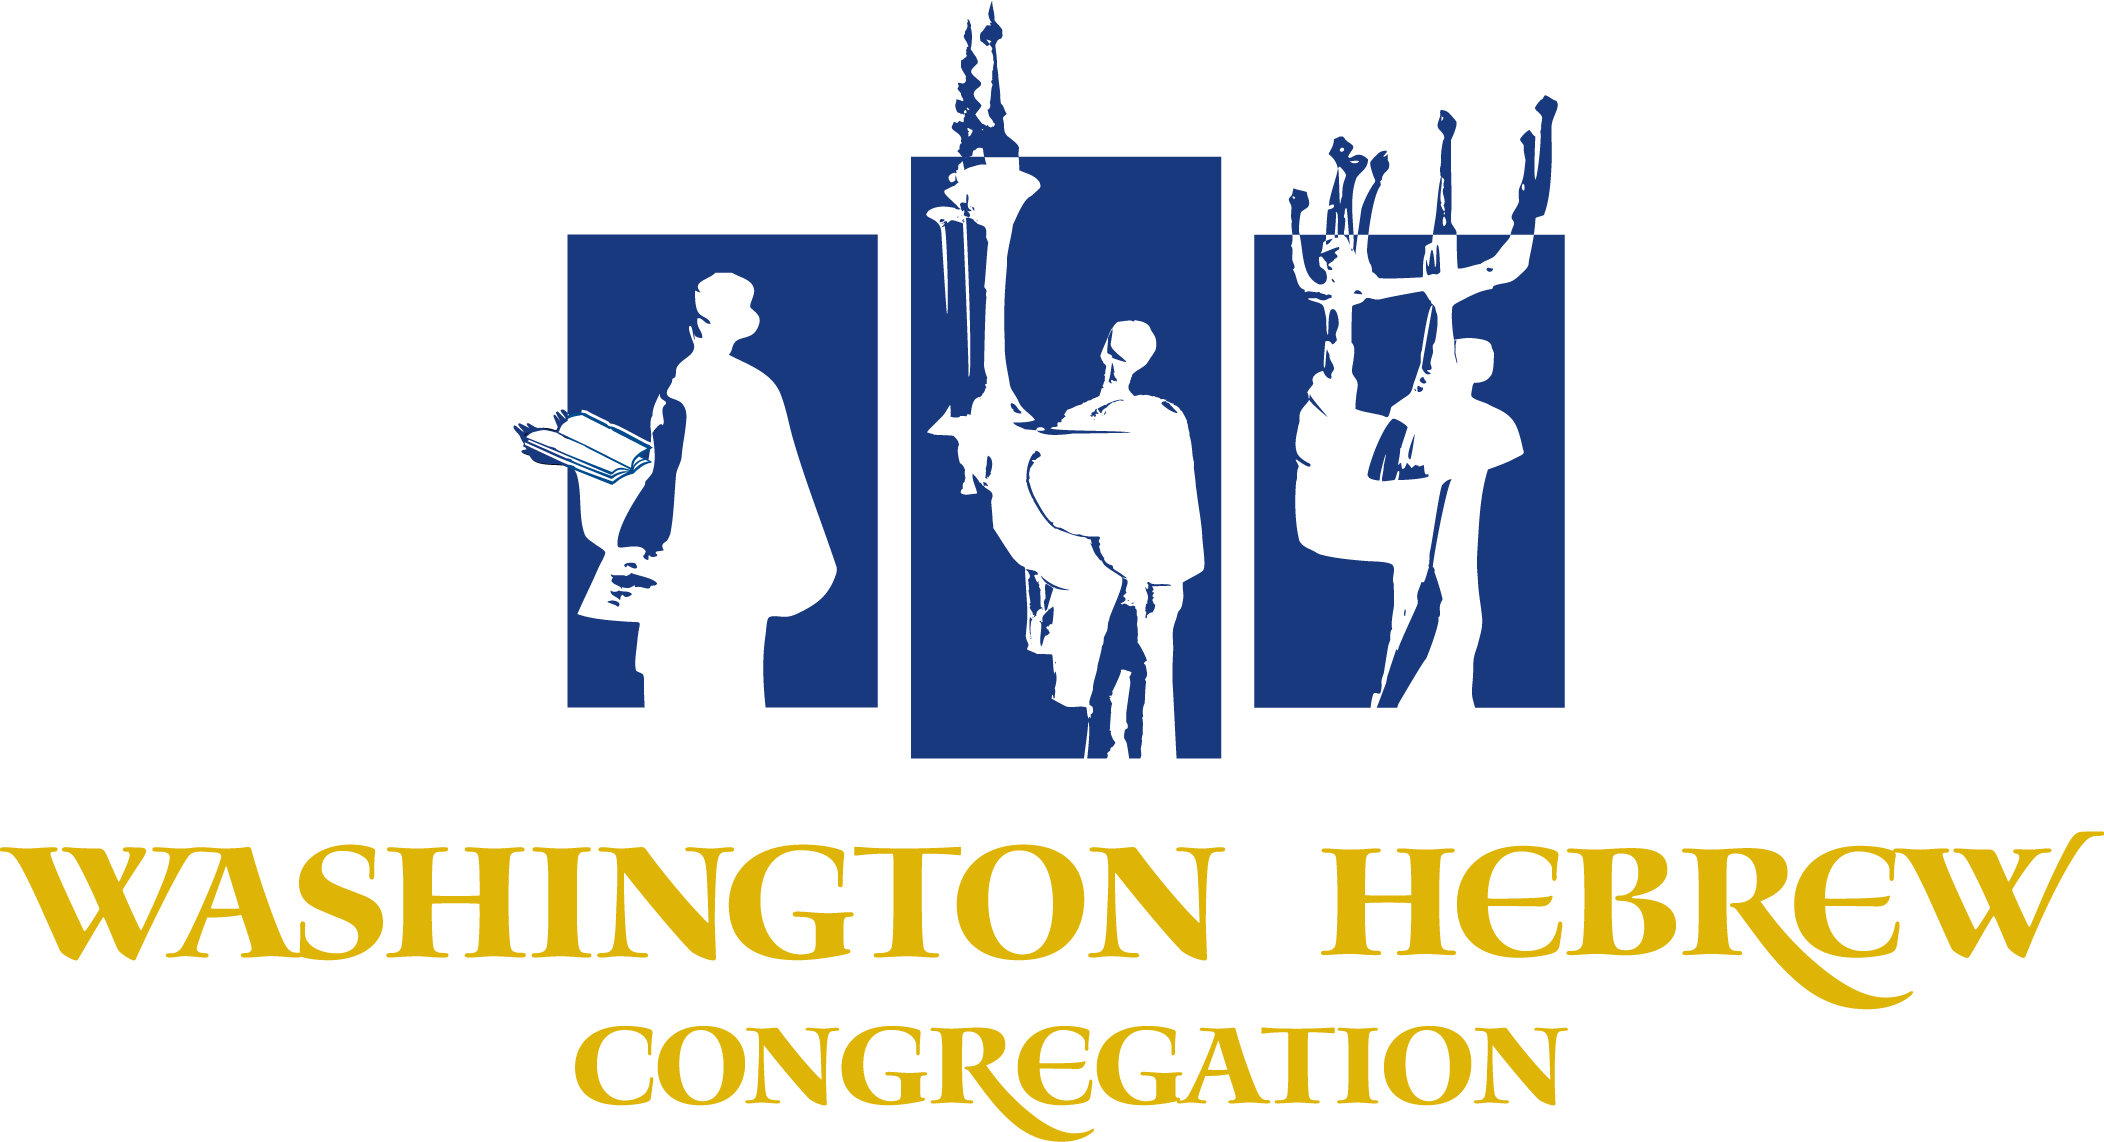 washington hebrew congregation logo